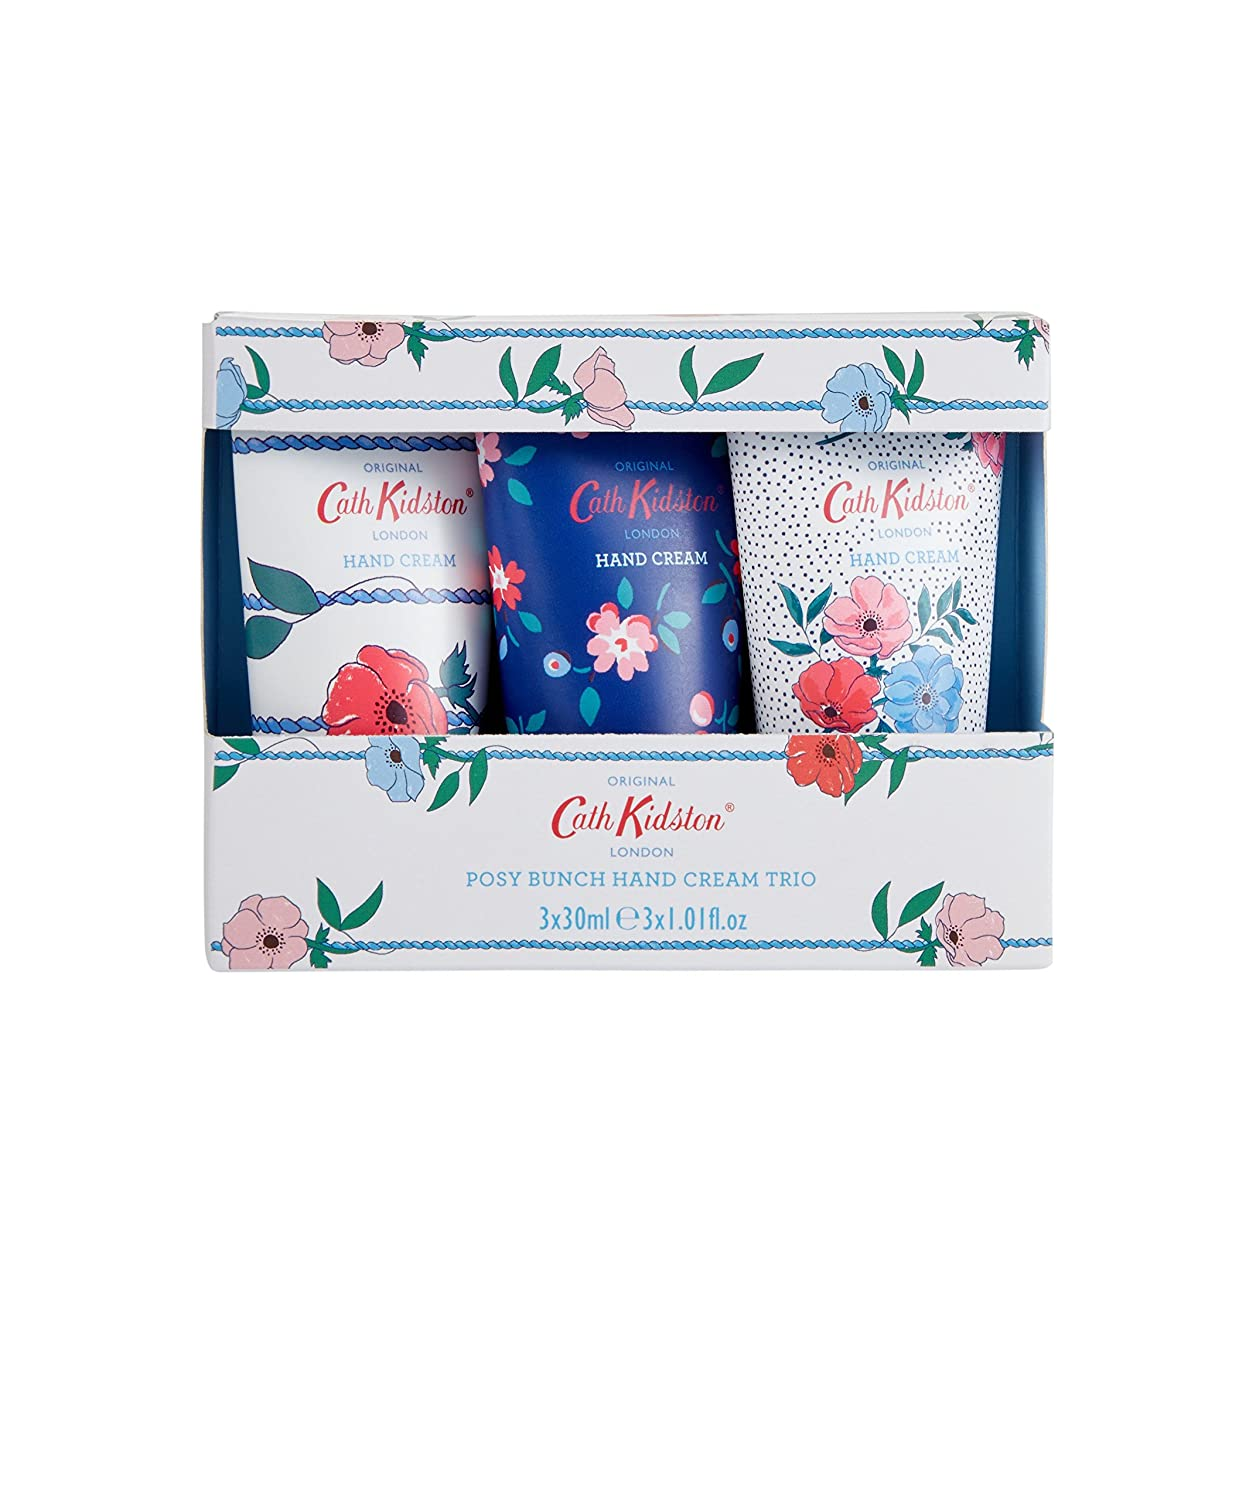 Cath Kidston Posy Bunch Hand Cream, 30 ml, Pack of 3 Heathcote & Ivory FG8900